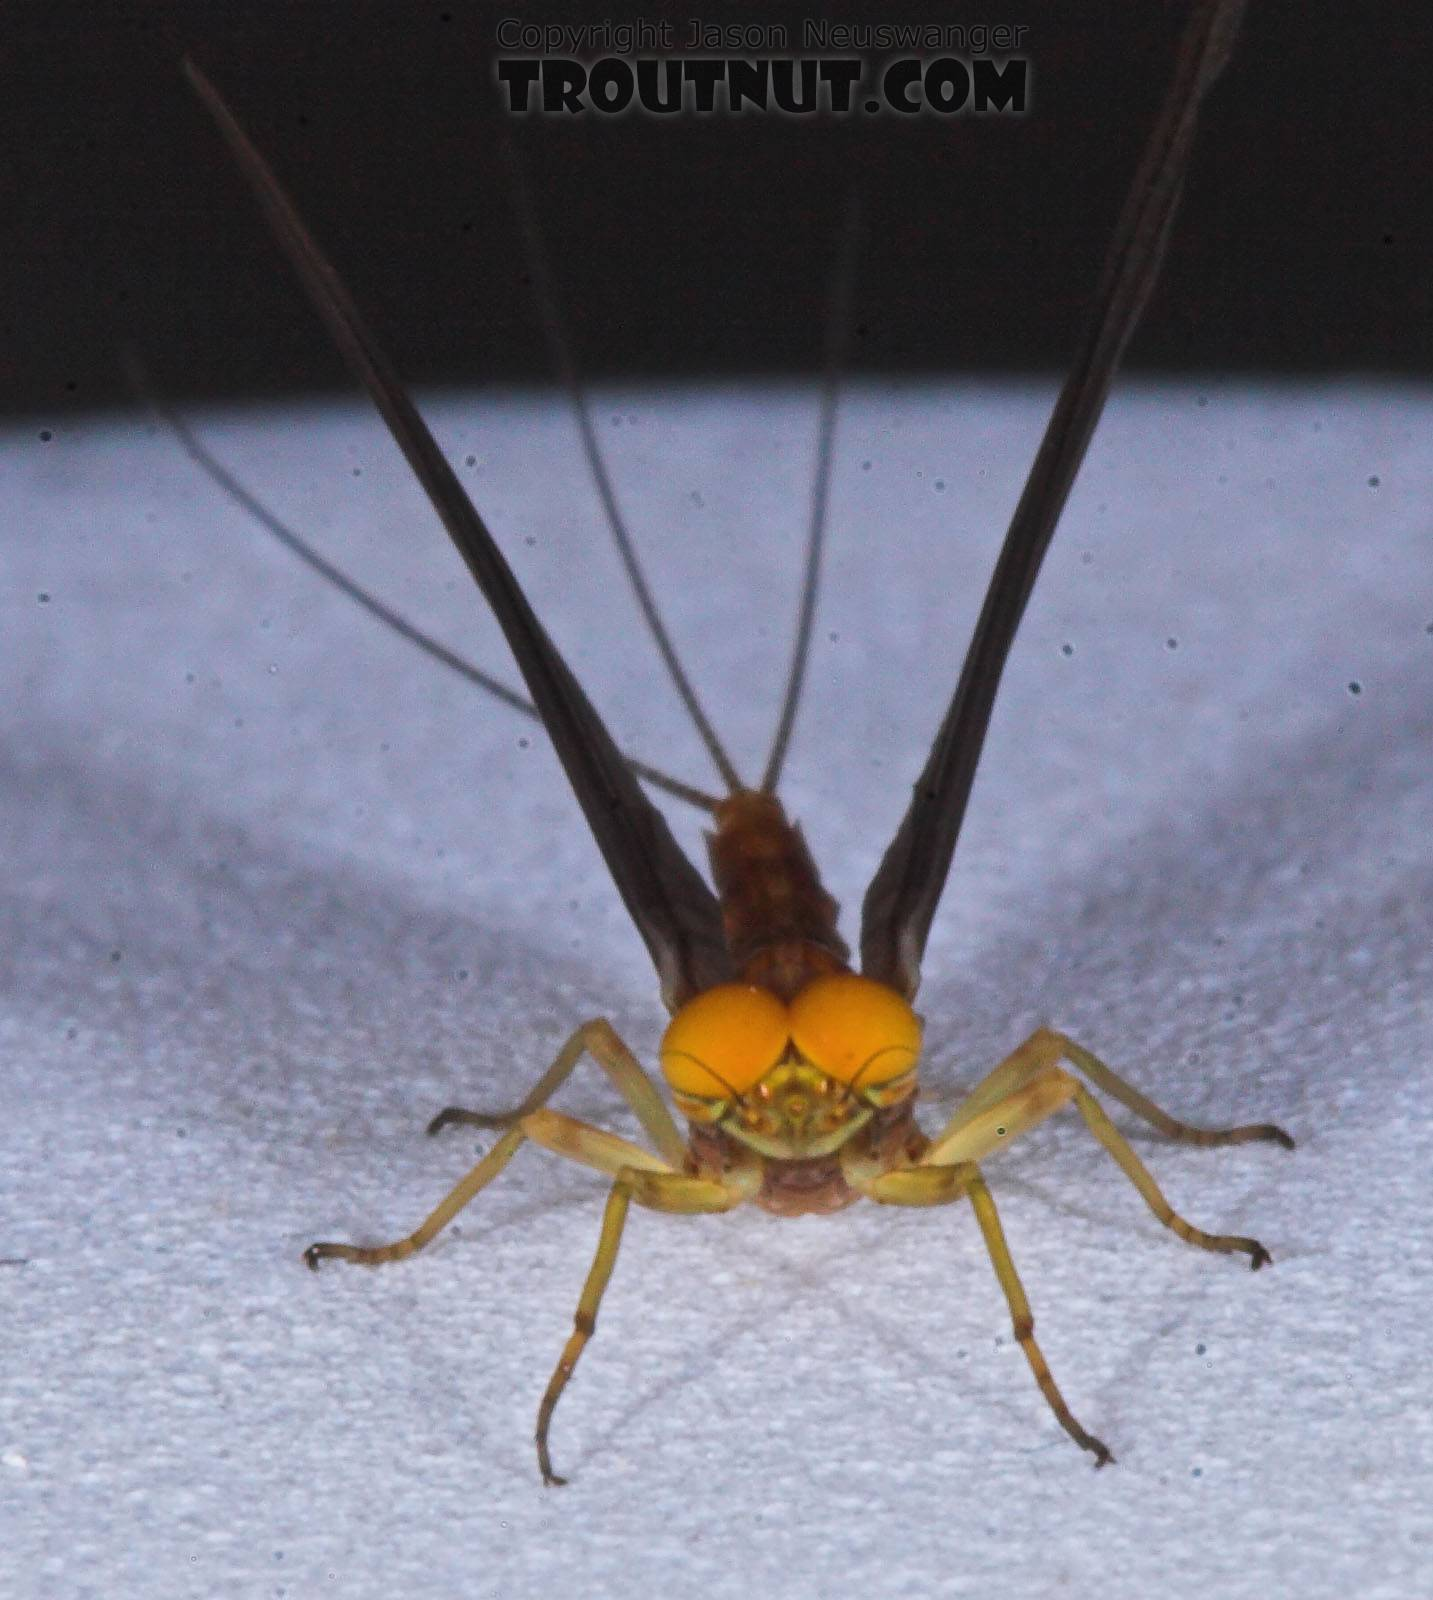 Male Eurylophella (Chocolate Duns) Mayfly Dun from the Teal River in Wisconsin